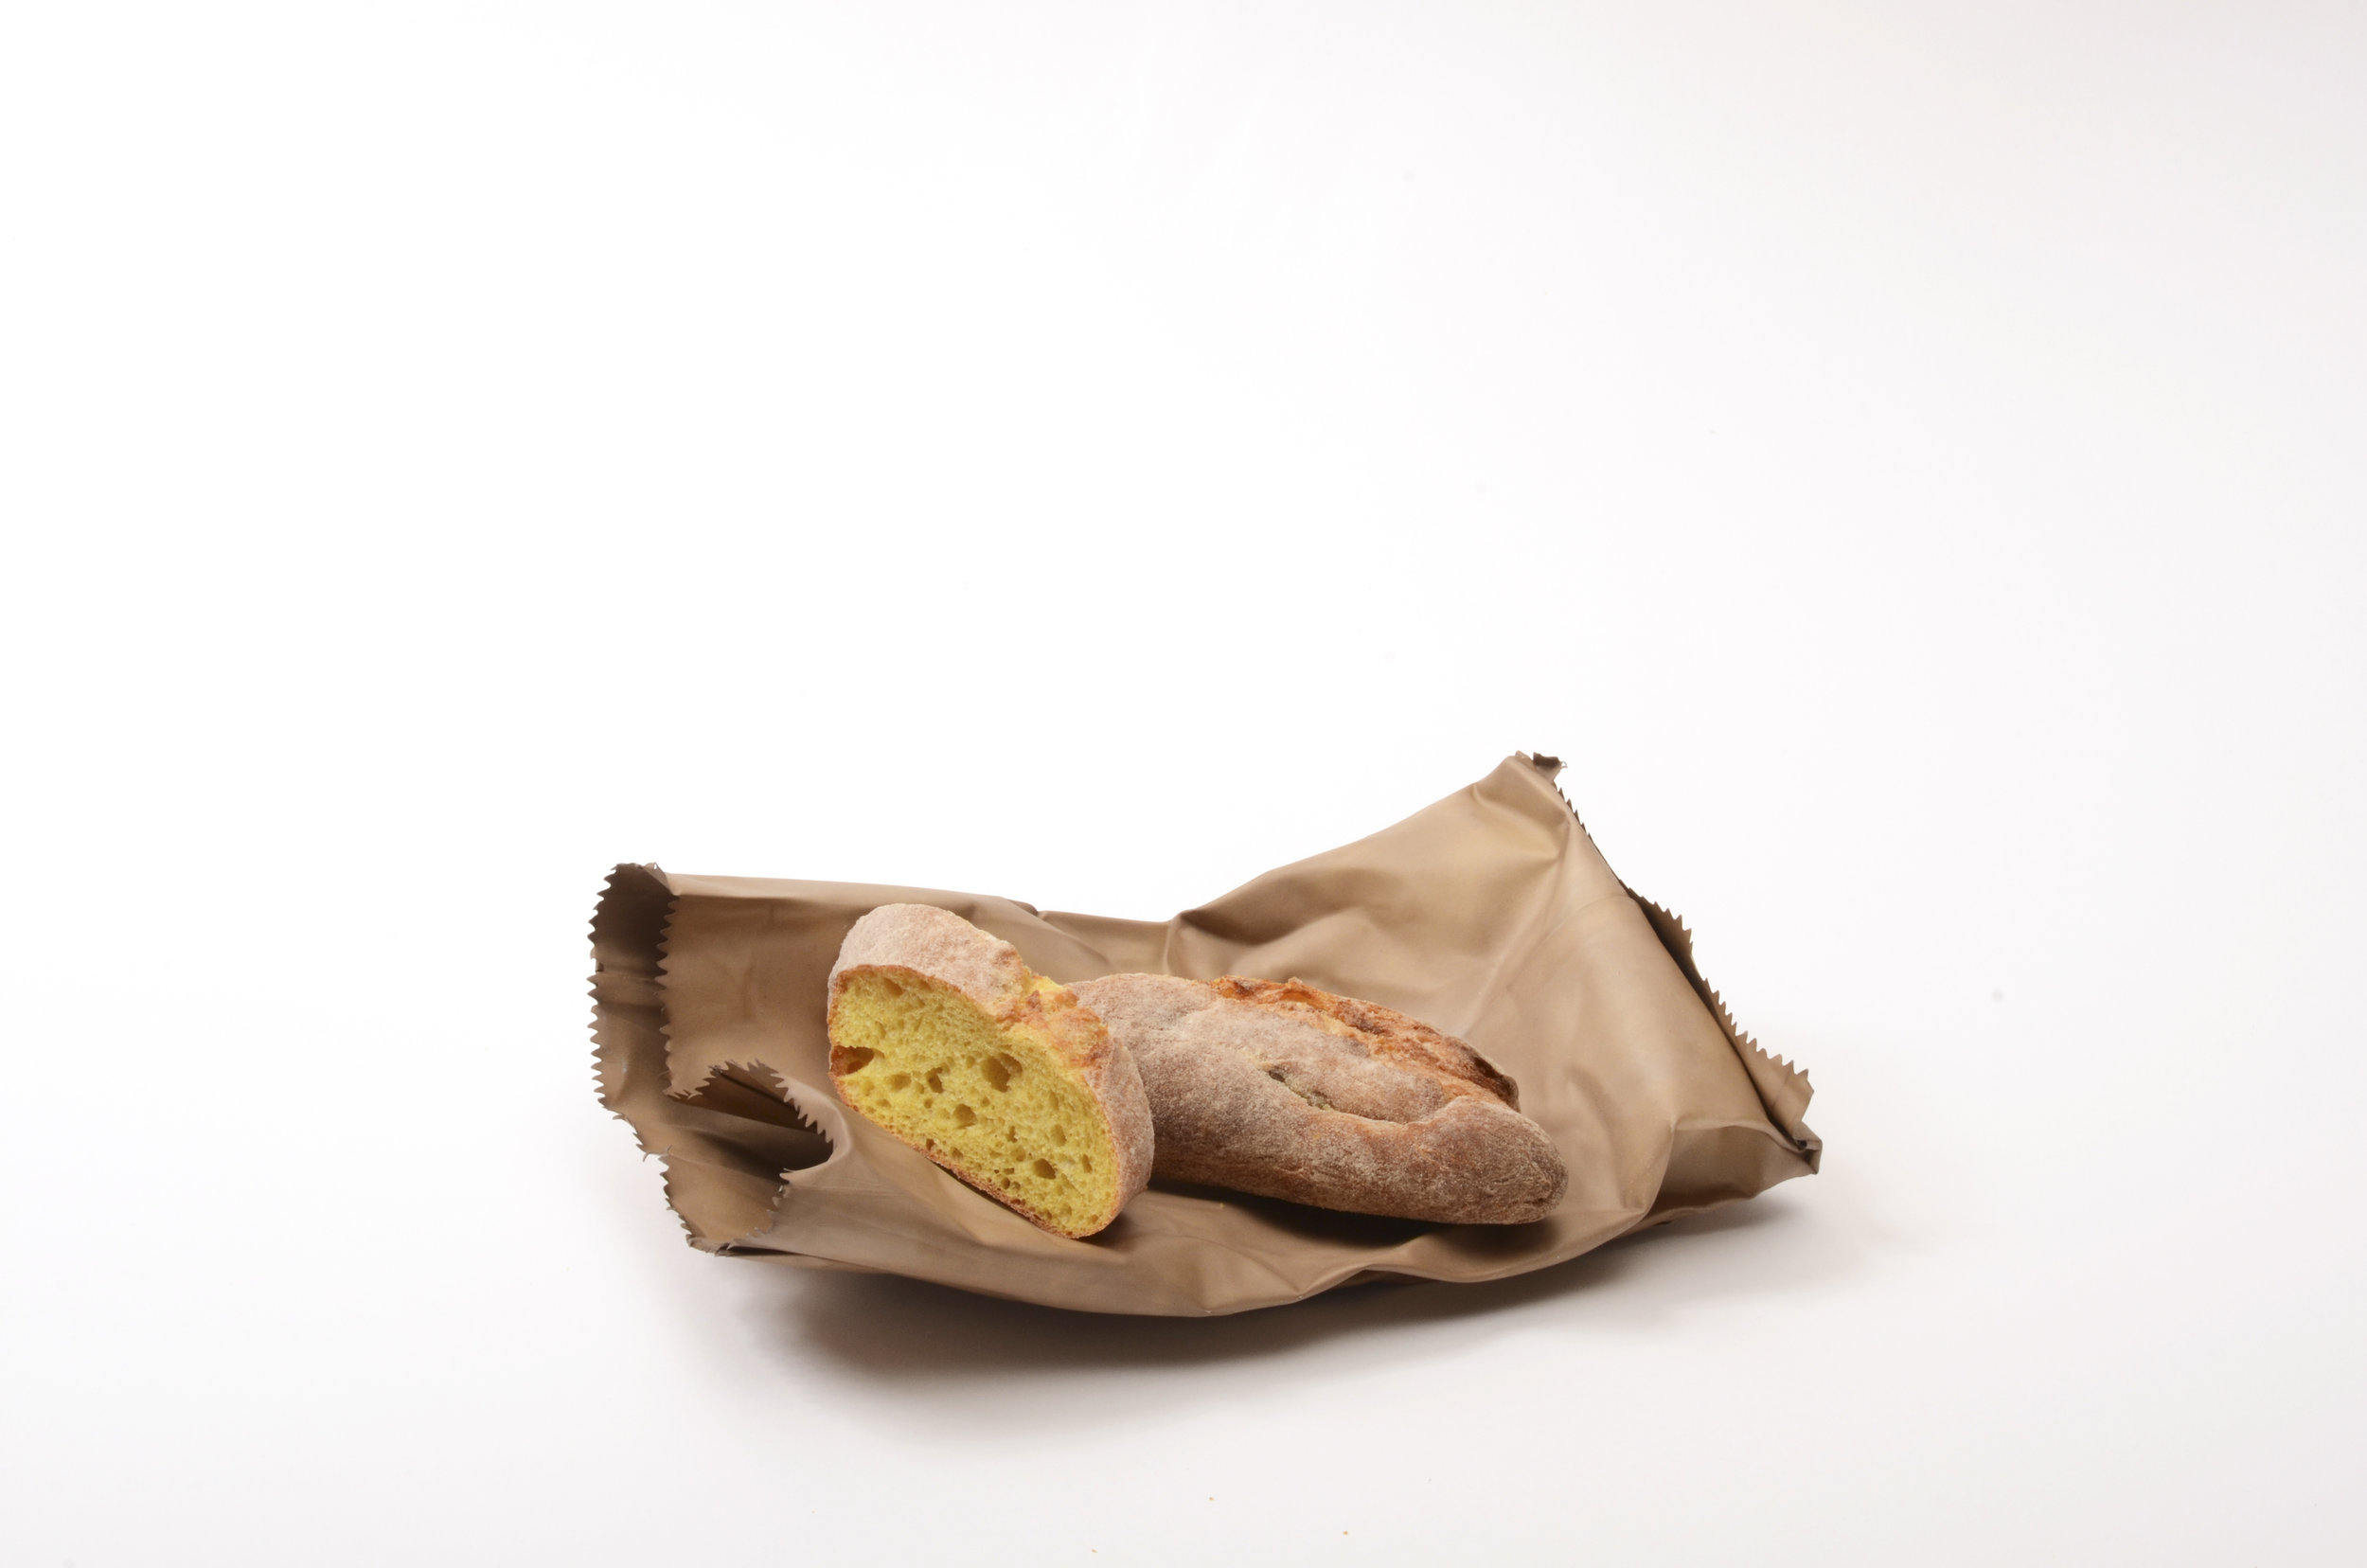 David Bielander,  Paper bag (Croissant),  2016, patinated silver, photograph by Dirk Eisel